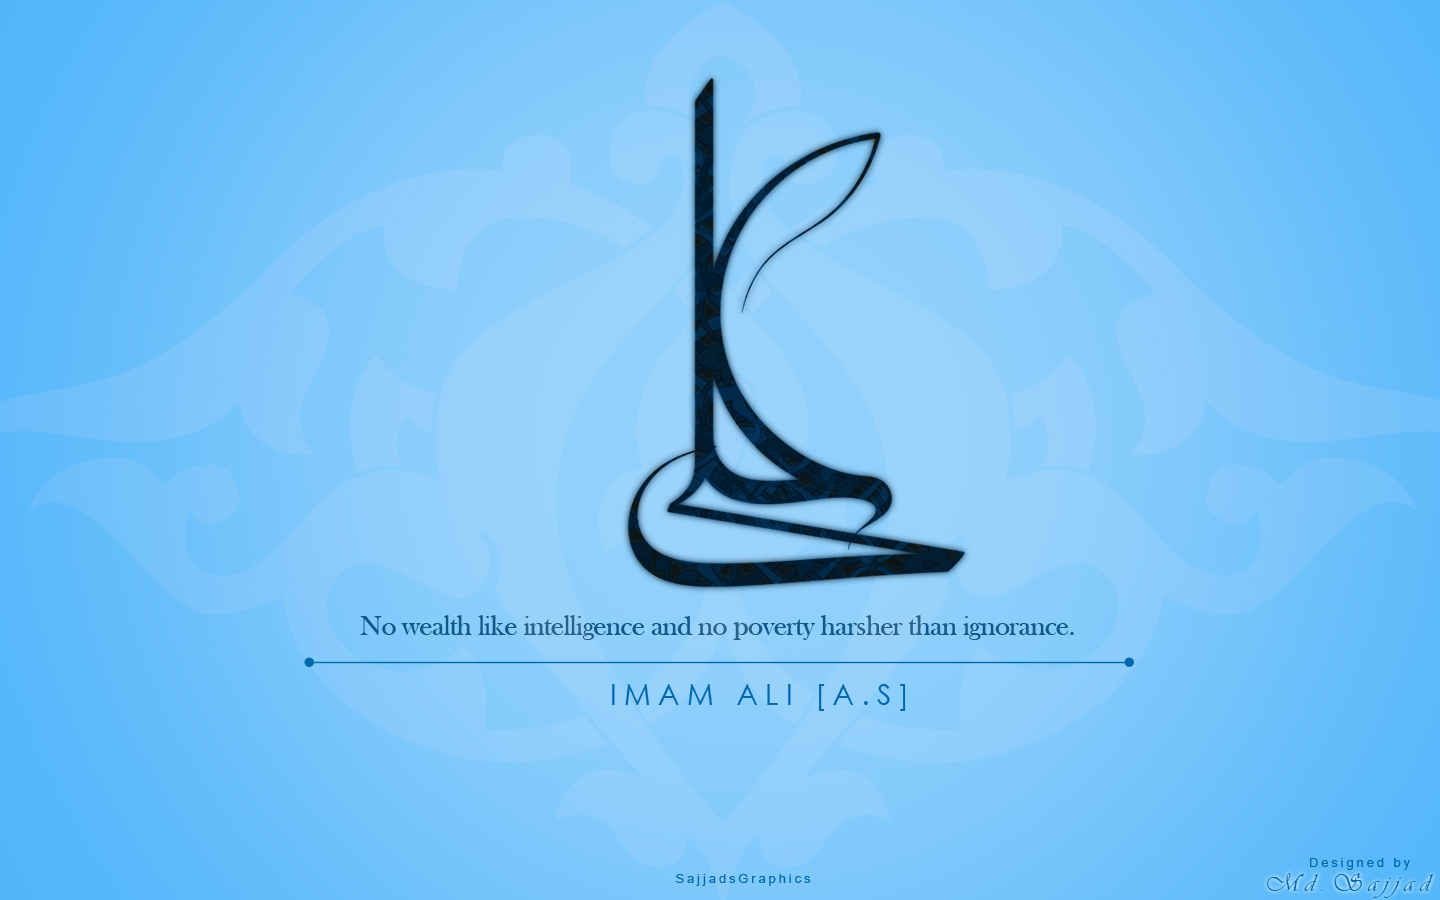 Imam Ali Wallpaper http://sajjadsgraphics.artician.com/blog/2010/06/imam-ali-as-wallpaper-birthday-on-13th-of-rajab/